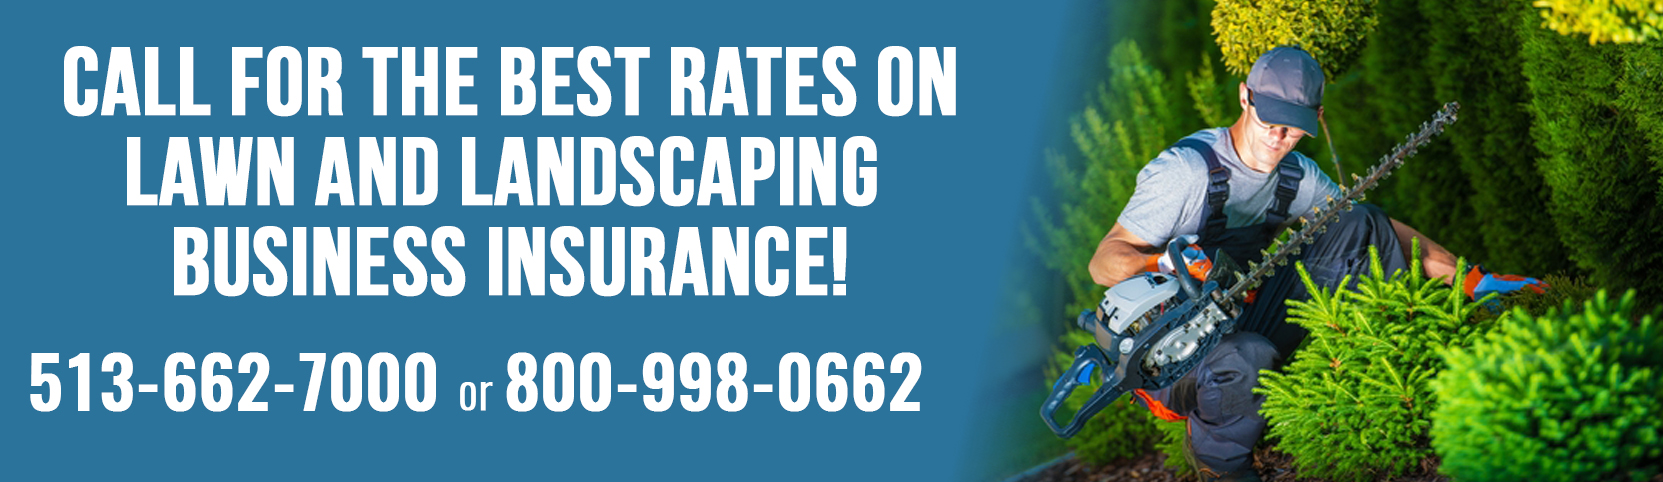 Landscaping Business Insurance Columbus